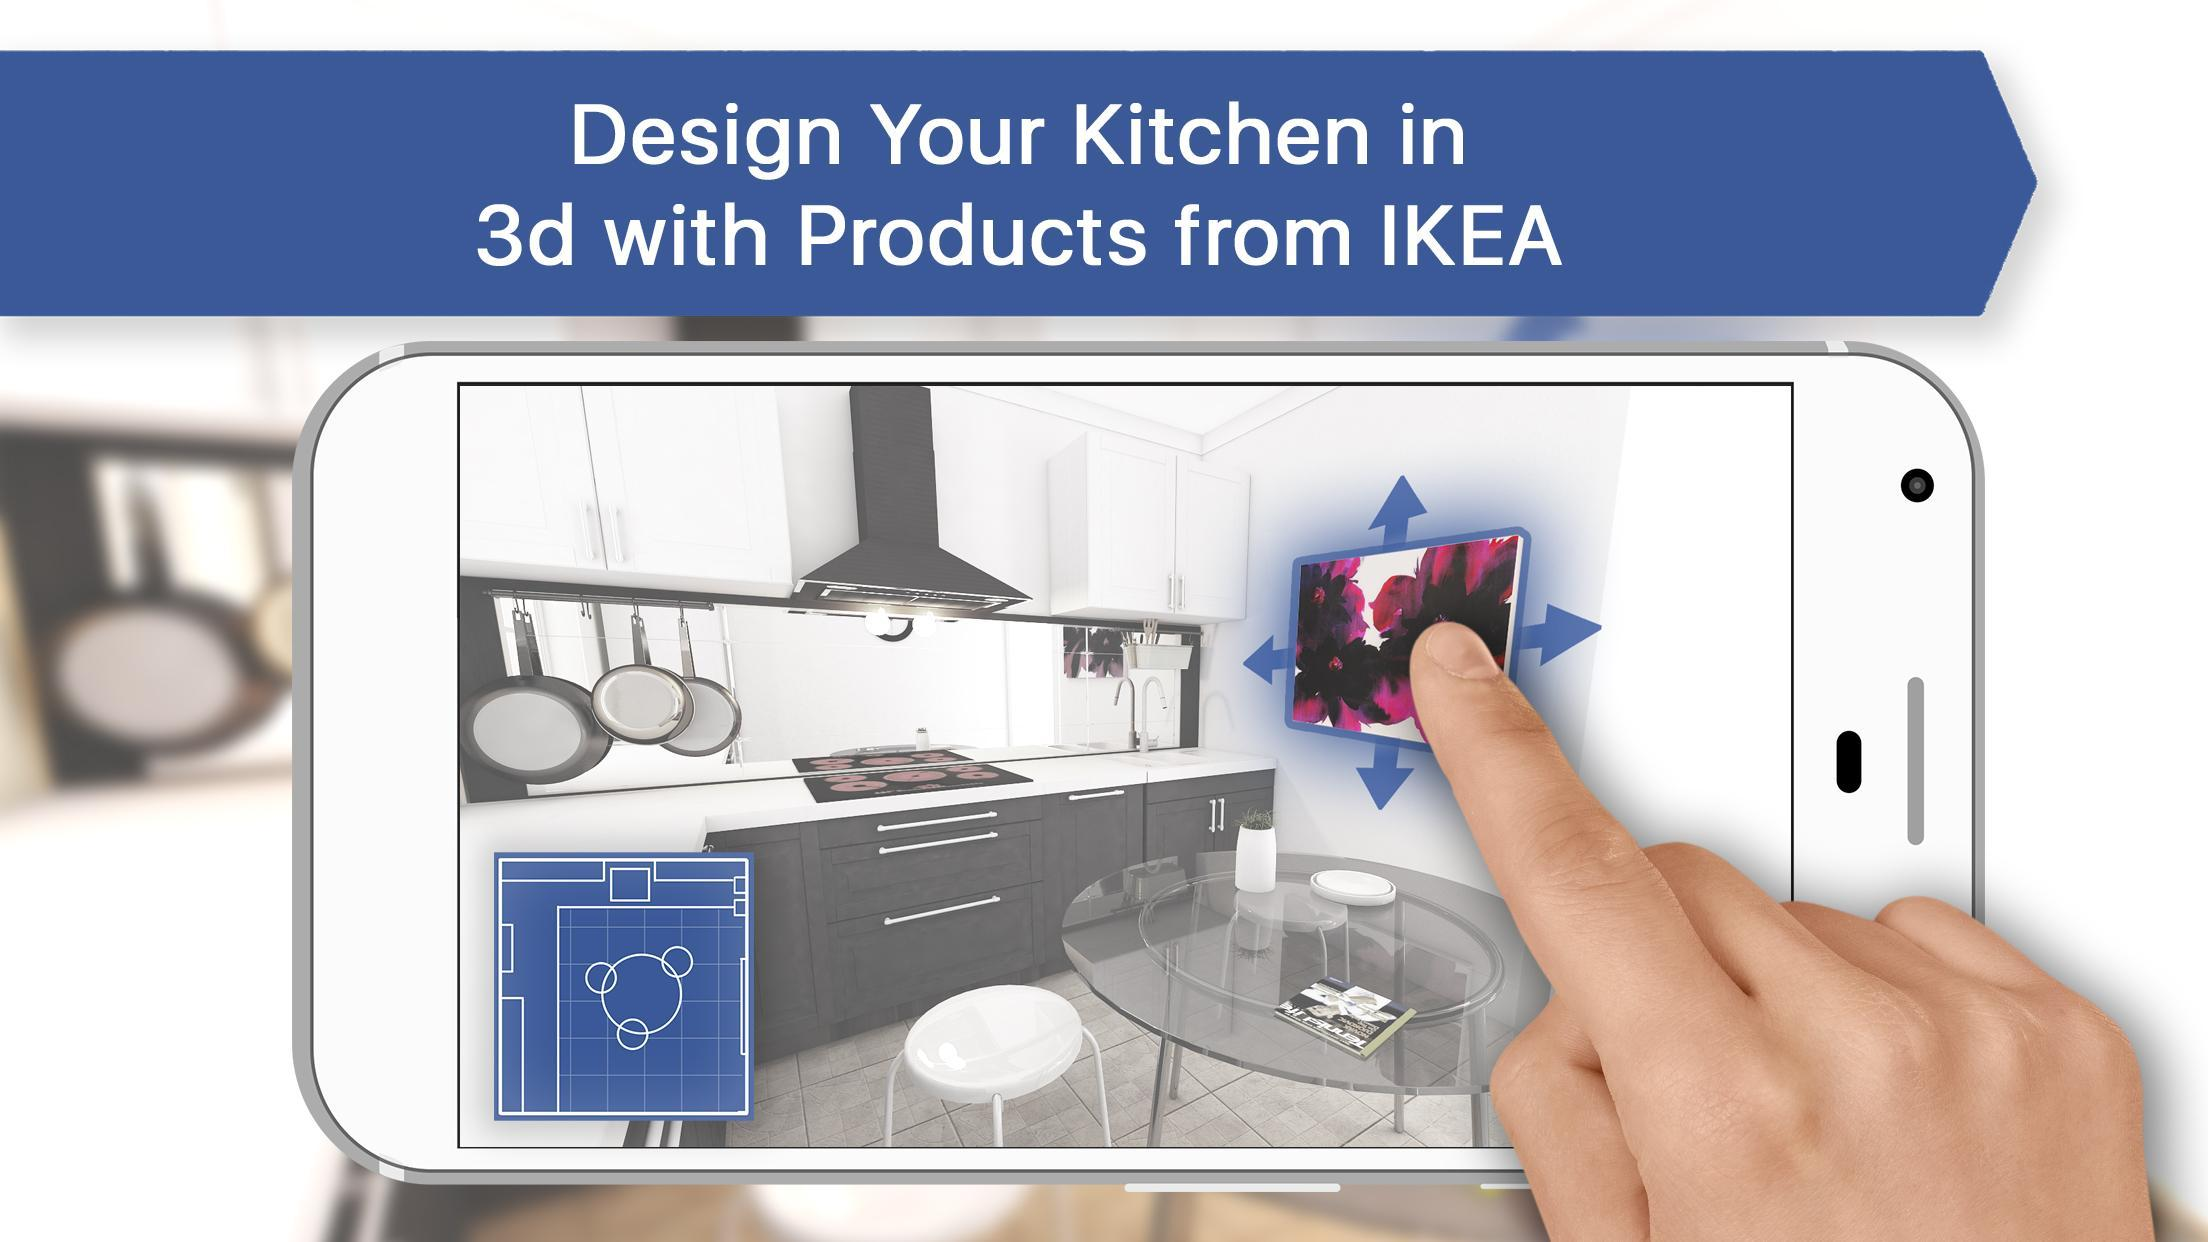 Ikea Home Planner Italiano 3d kitchen design for ikea: room interior planner for android